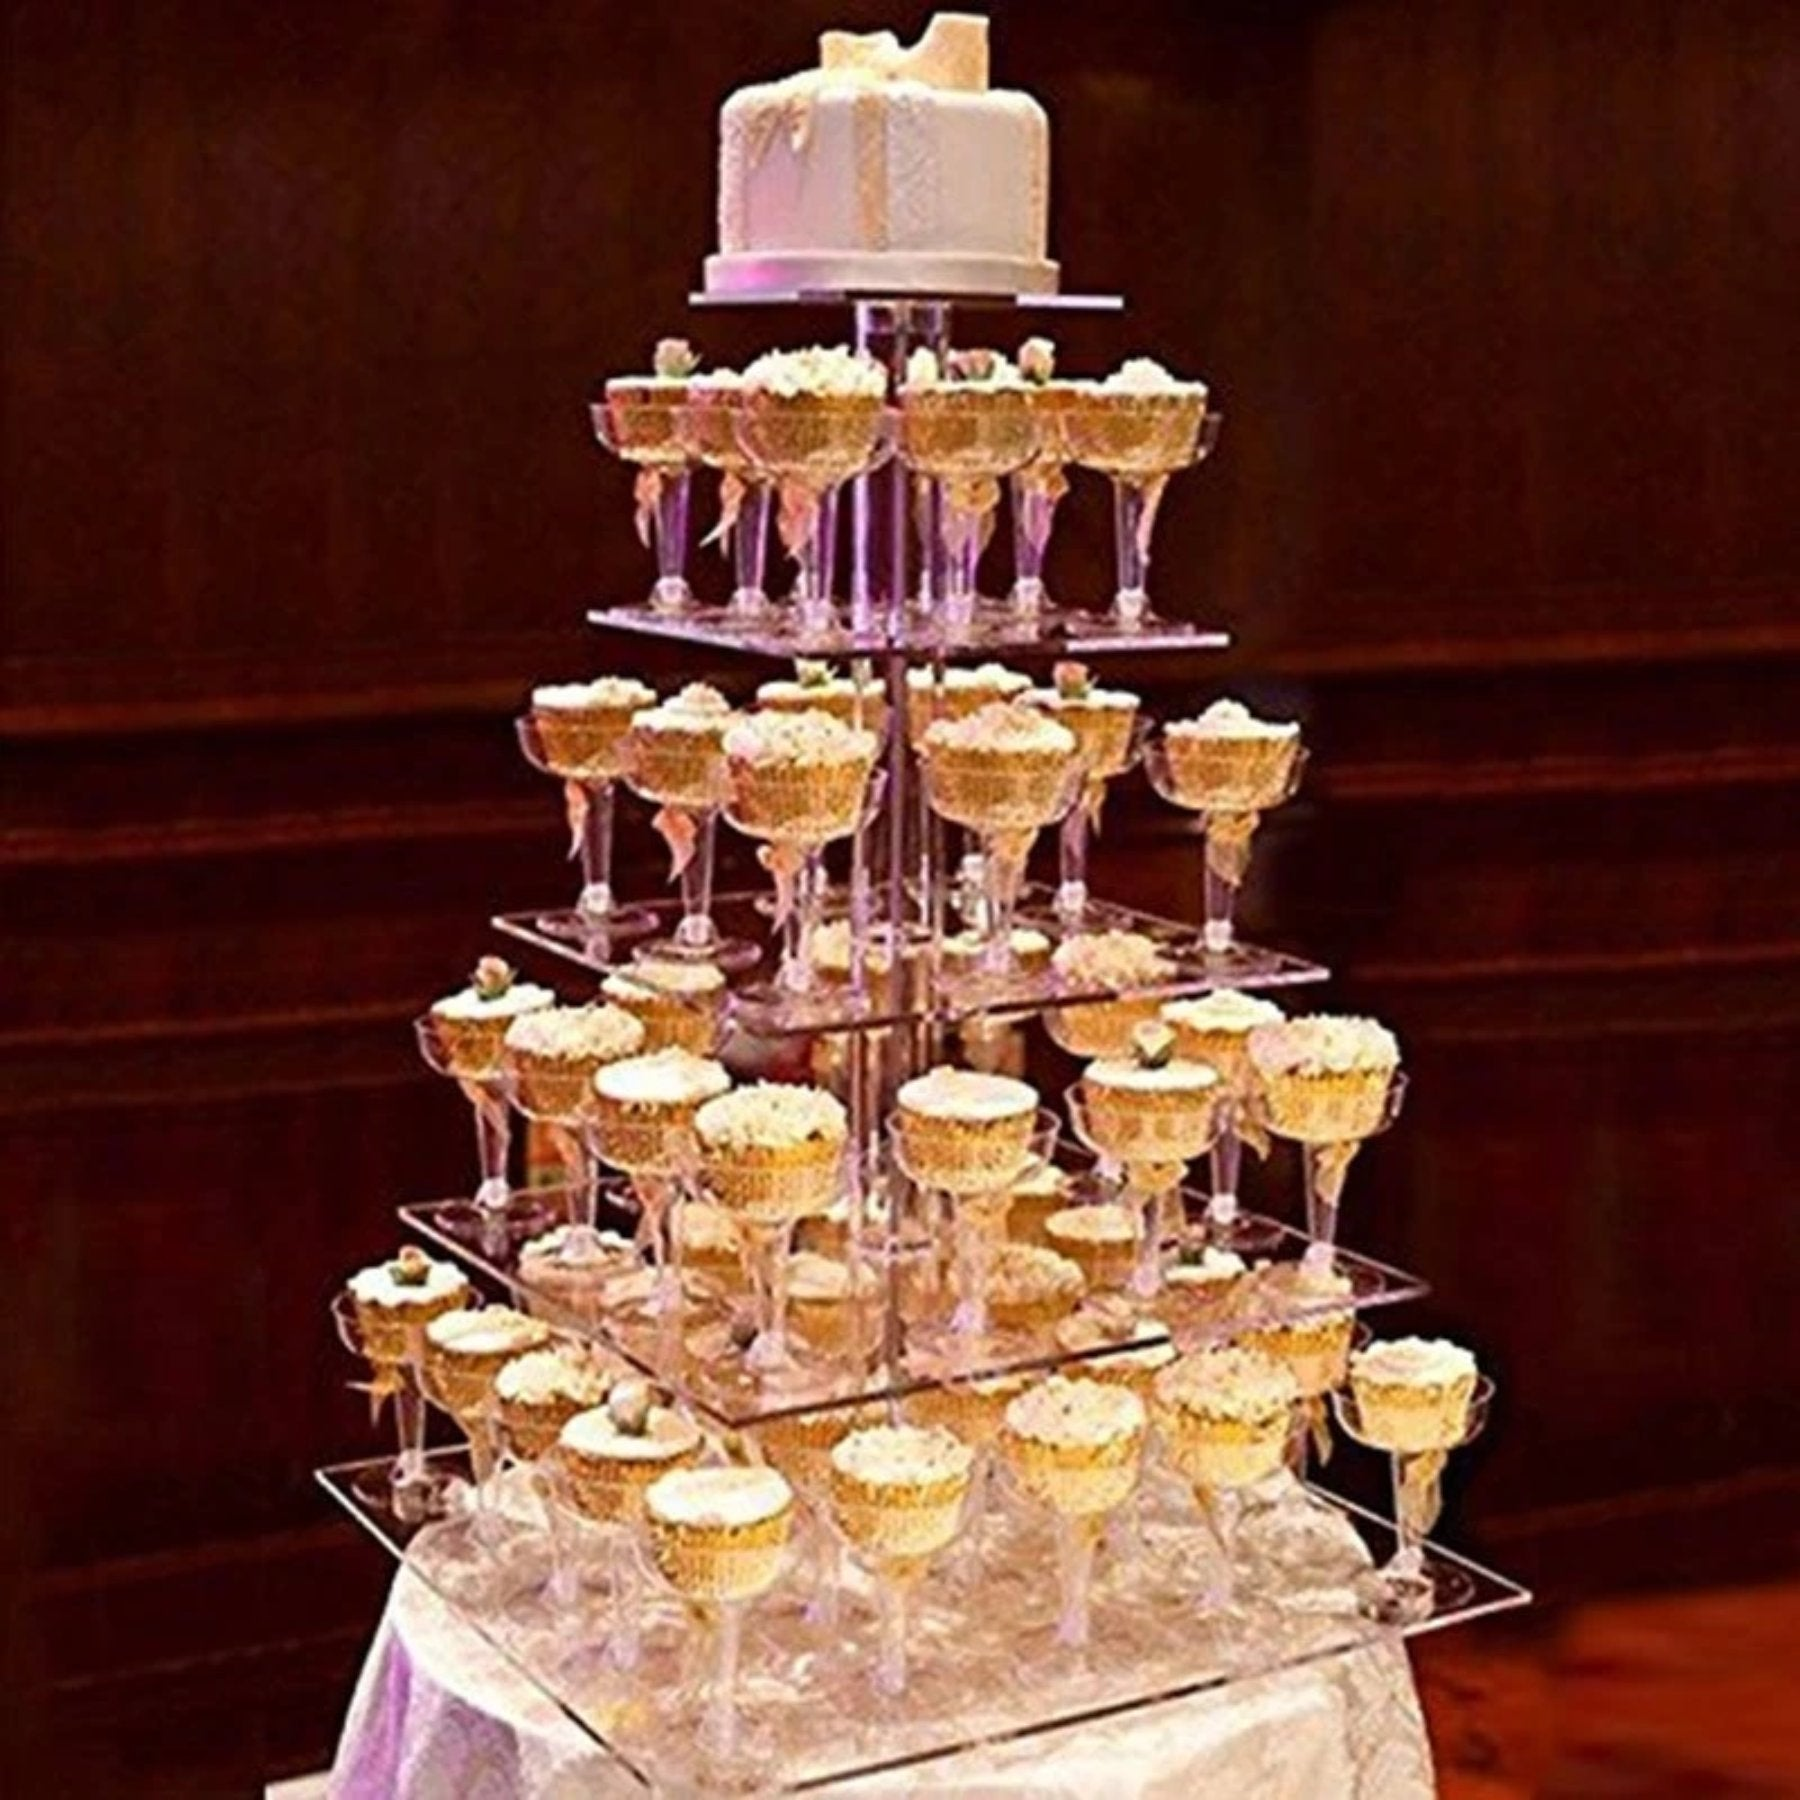 Two Tier With Cupcakes For The Guests Justin S Favorite Idea